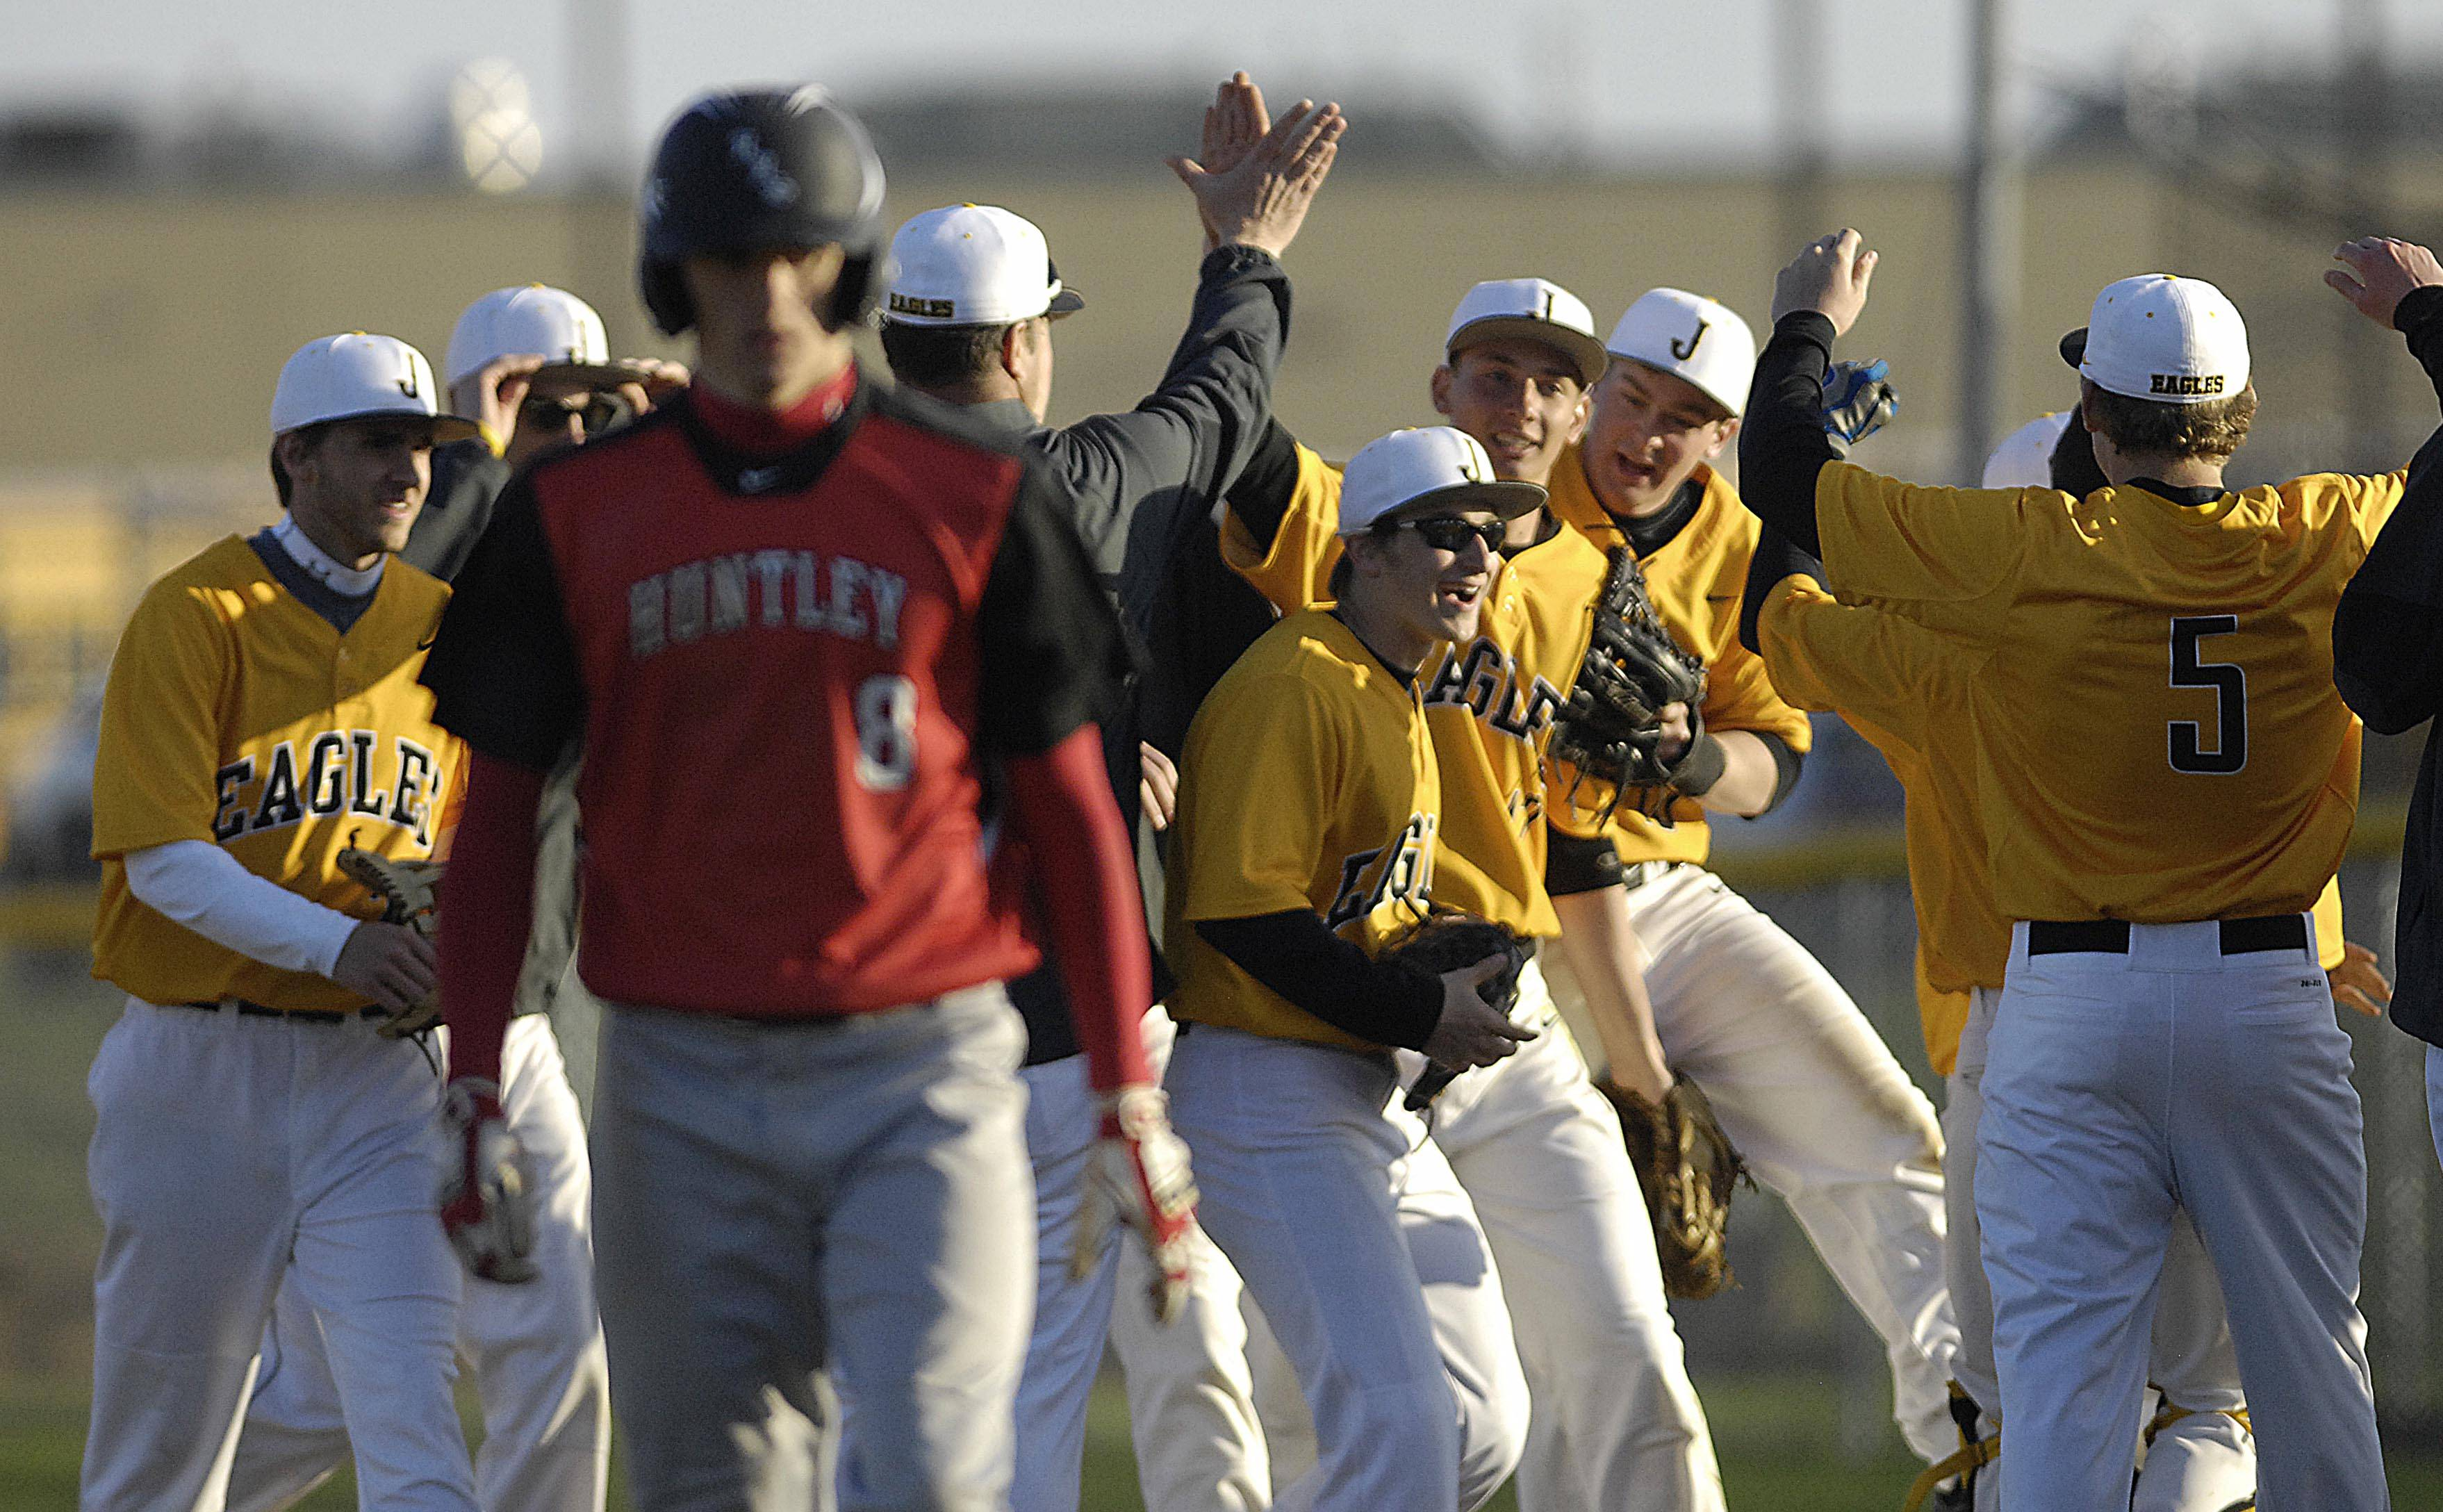 The Jacobs players celebrate a win over Huntley Tuesday in Algonquin.